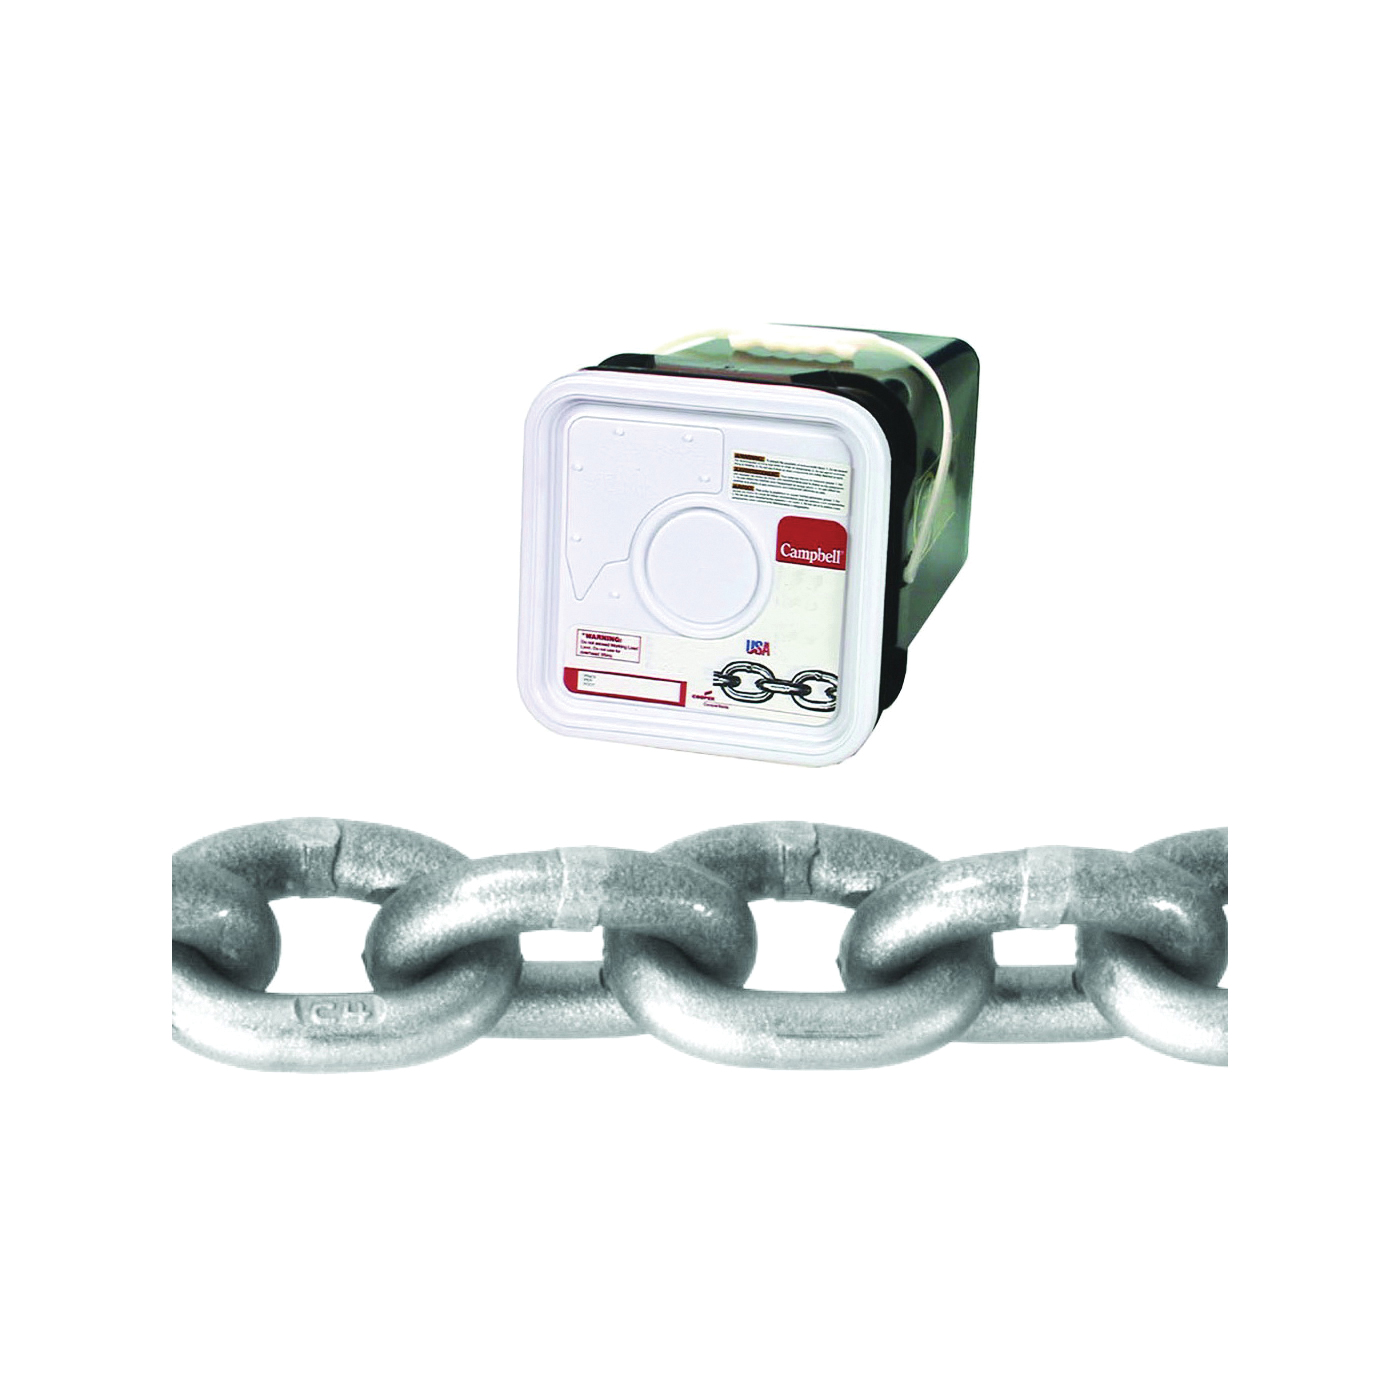 Picture of Campbell 0184416 High-Test Chain, 1/4 in Trade, 100 ft L, 2600 lb Working Load, 43 Grade, Carbon Steel, Bright